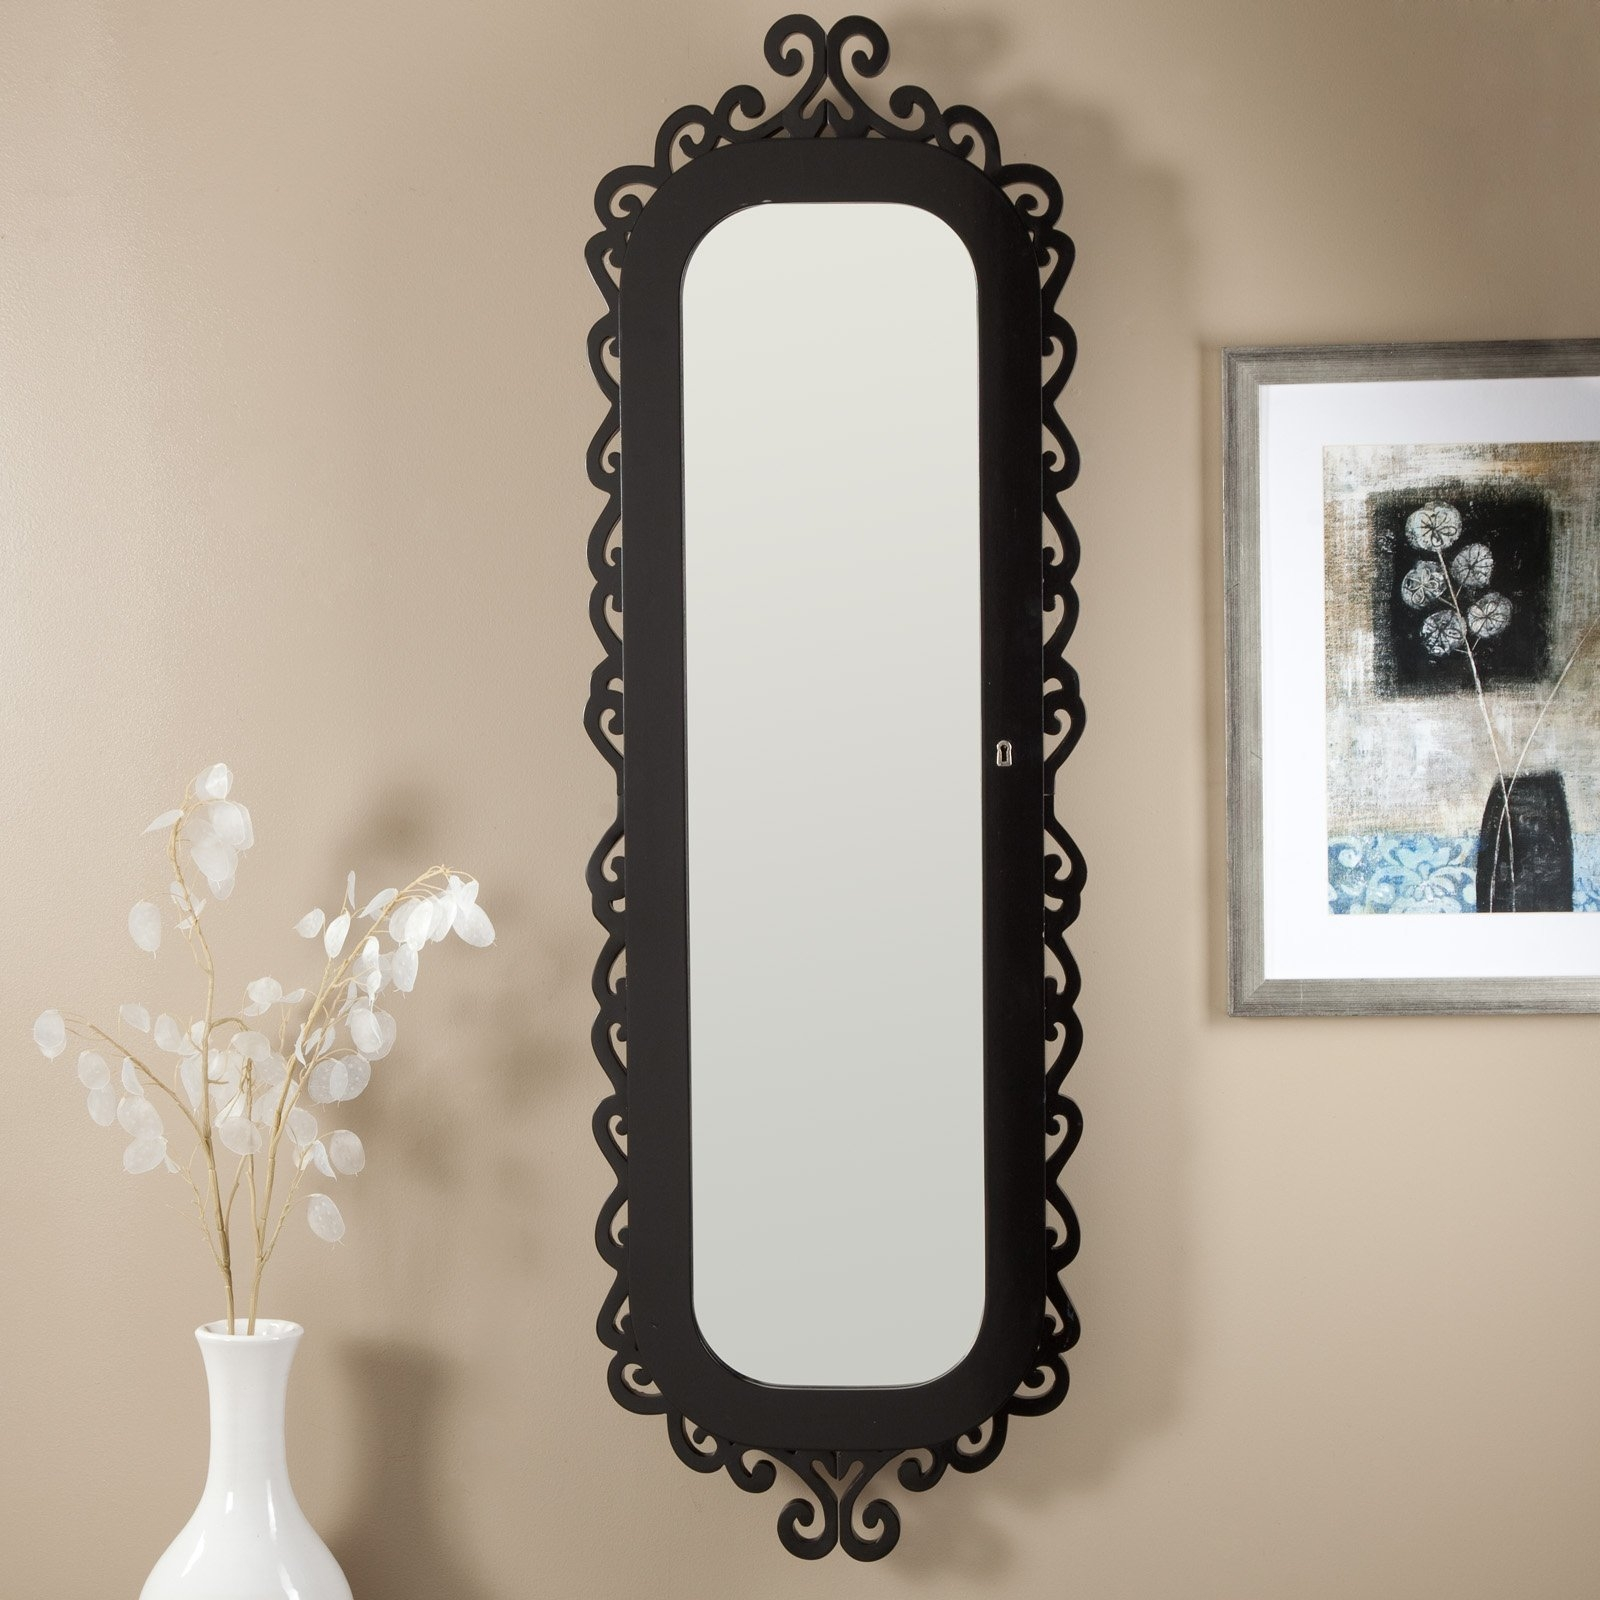 Buy Bathroom Mirrors Online Creative Bathroom Decoration For Vintage Style Mirrors Cheap (Image 3 of 15)